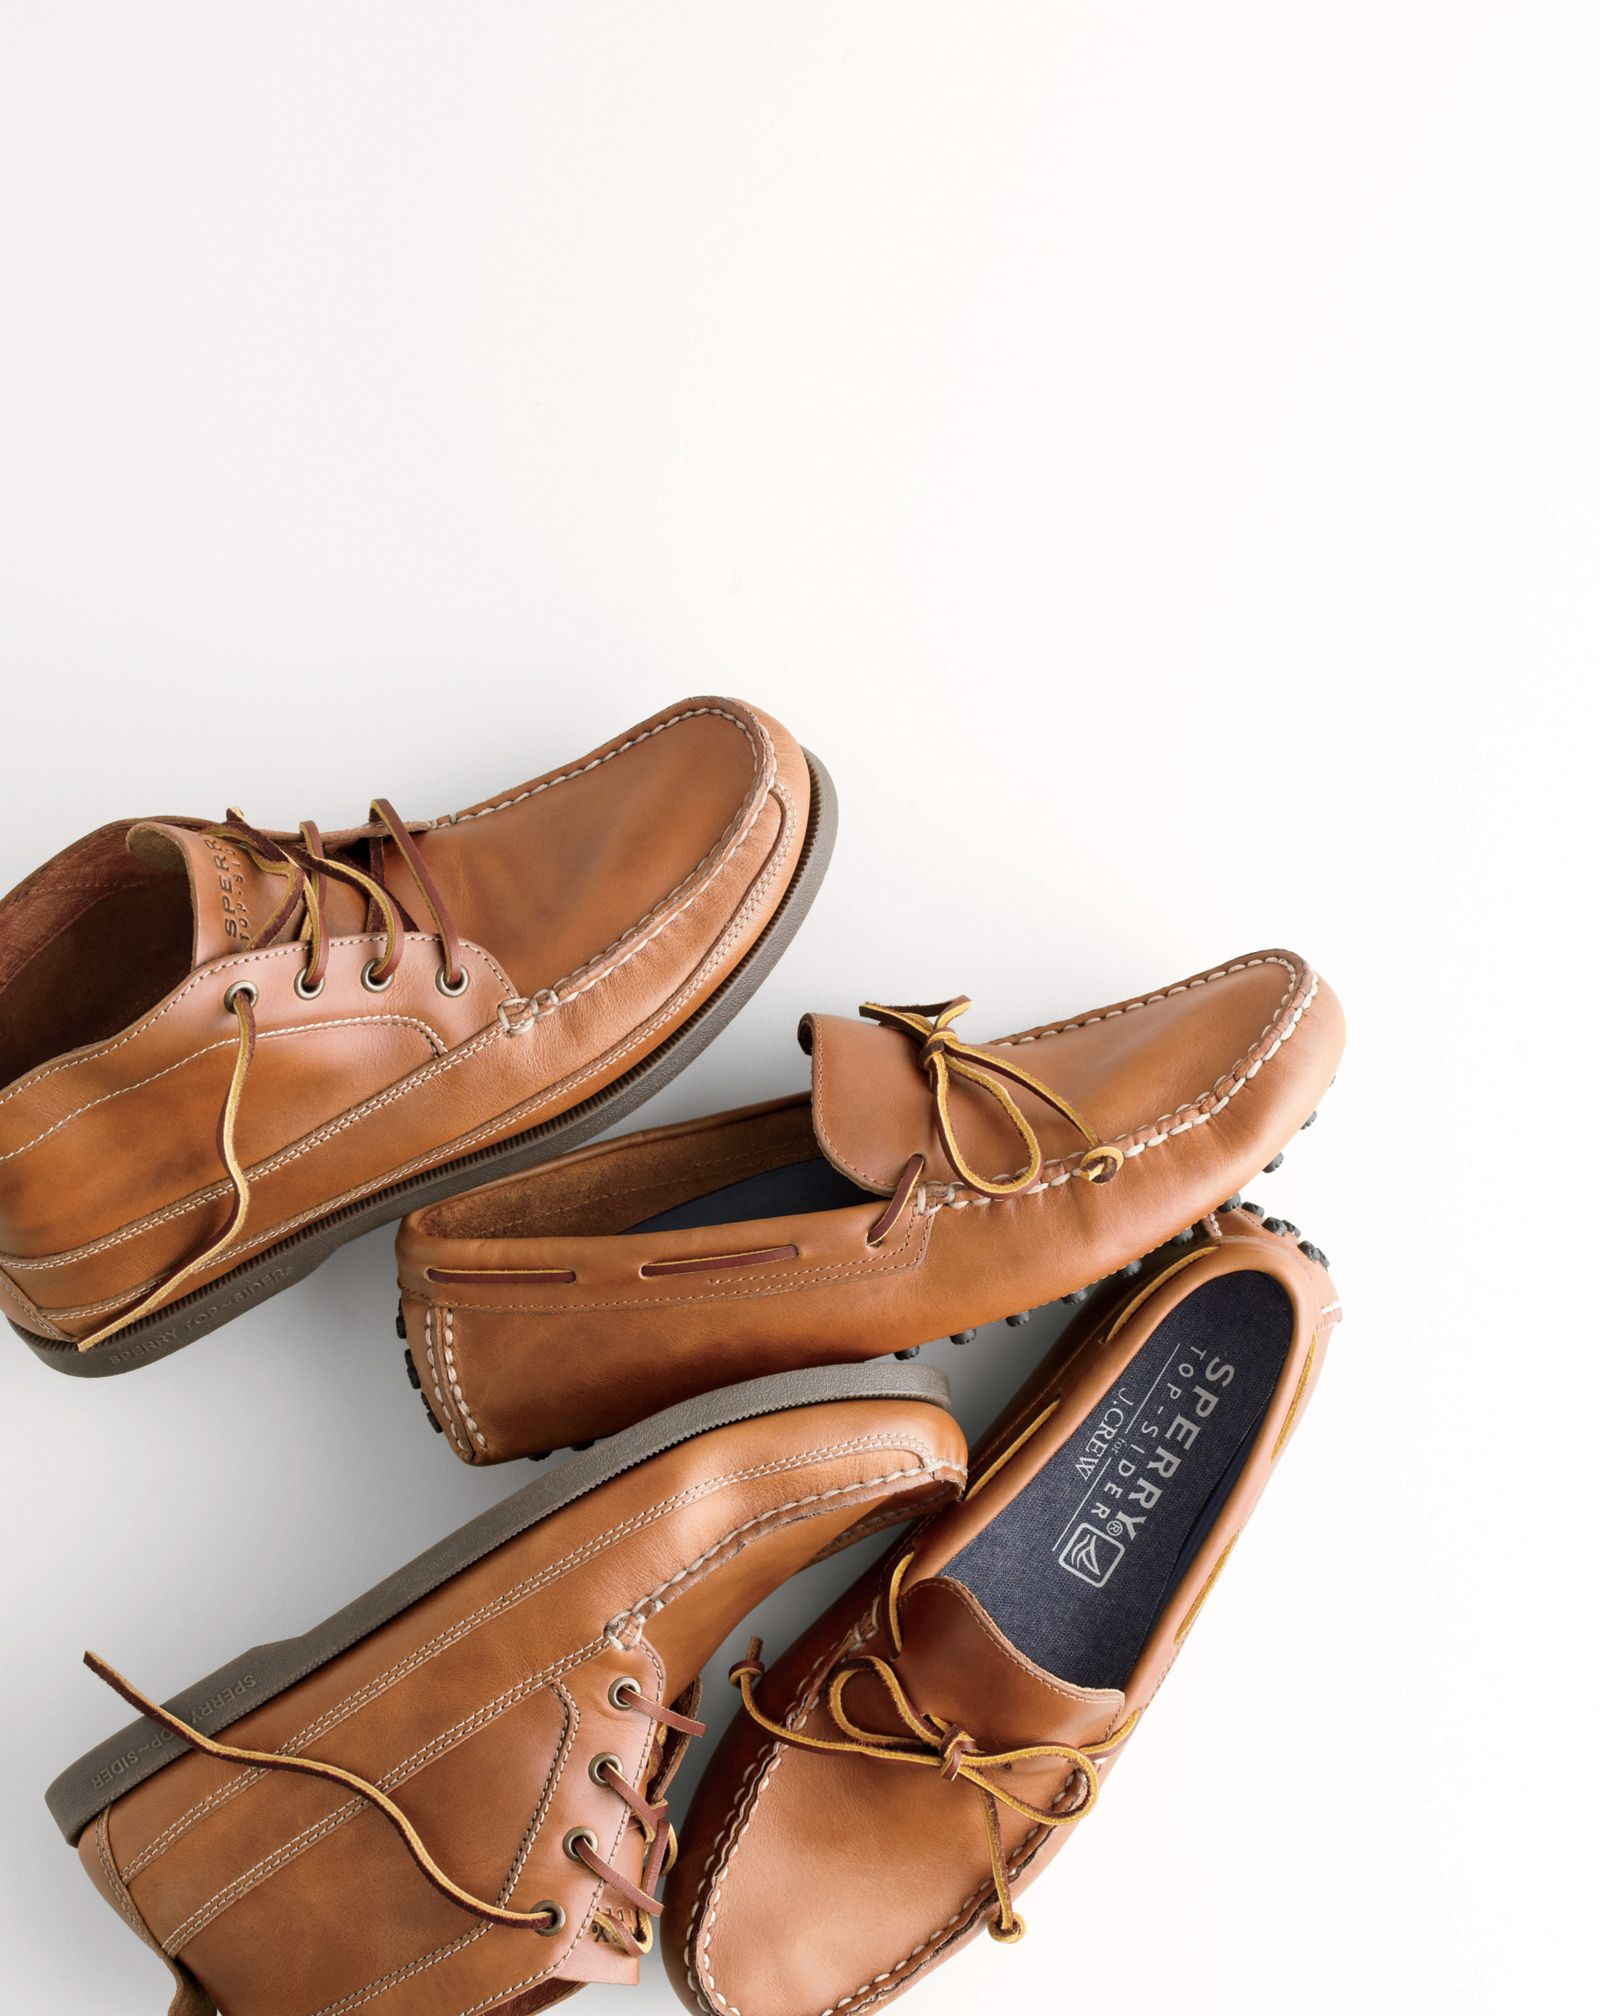 J.Crew men's Sperry® for J.Crew leather chukka boots and Sperry for